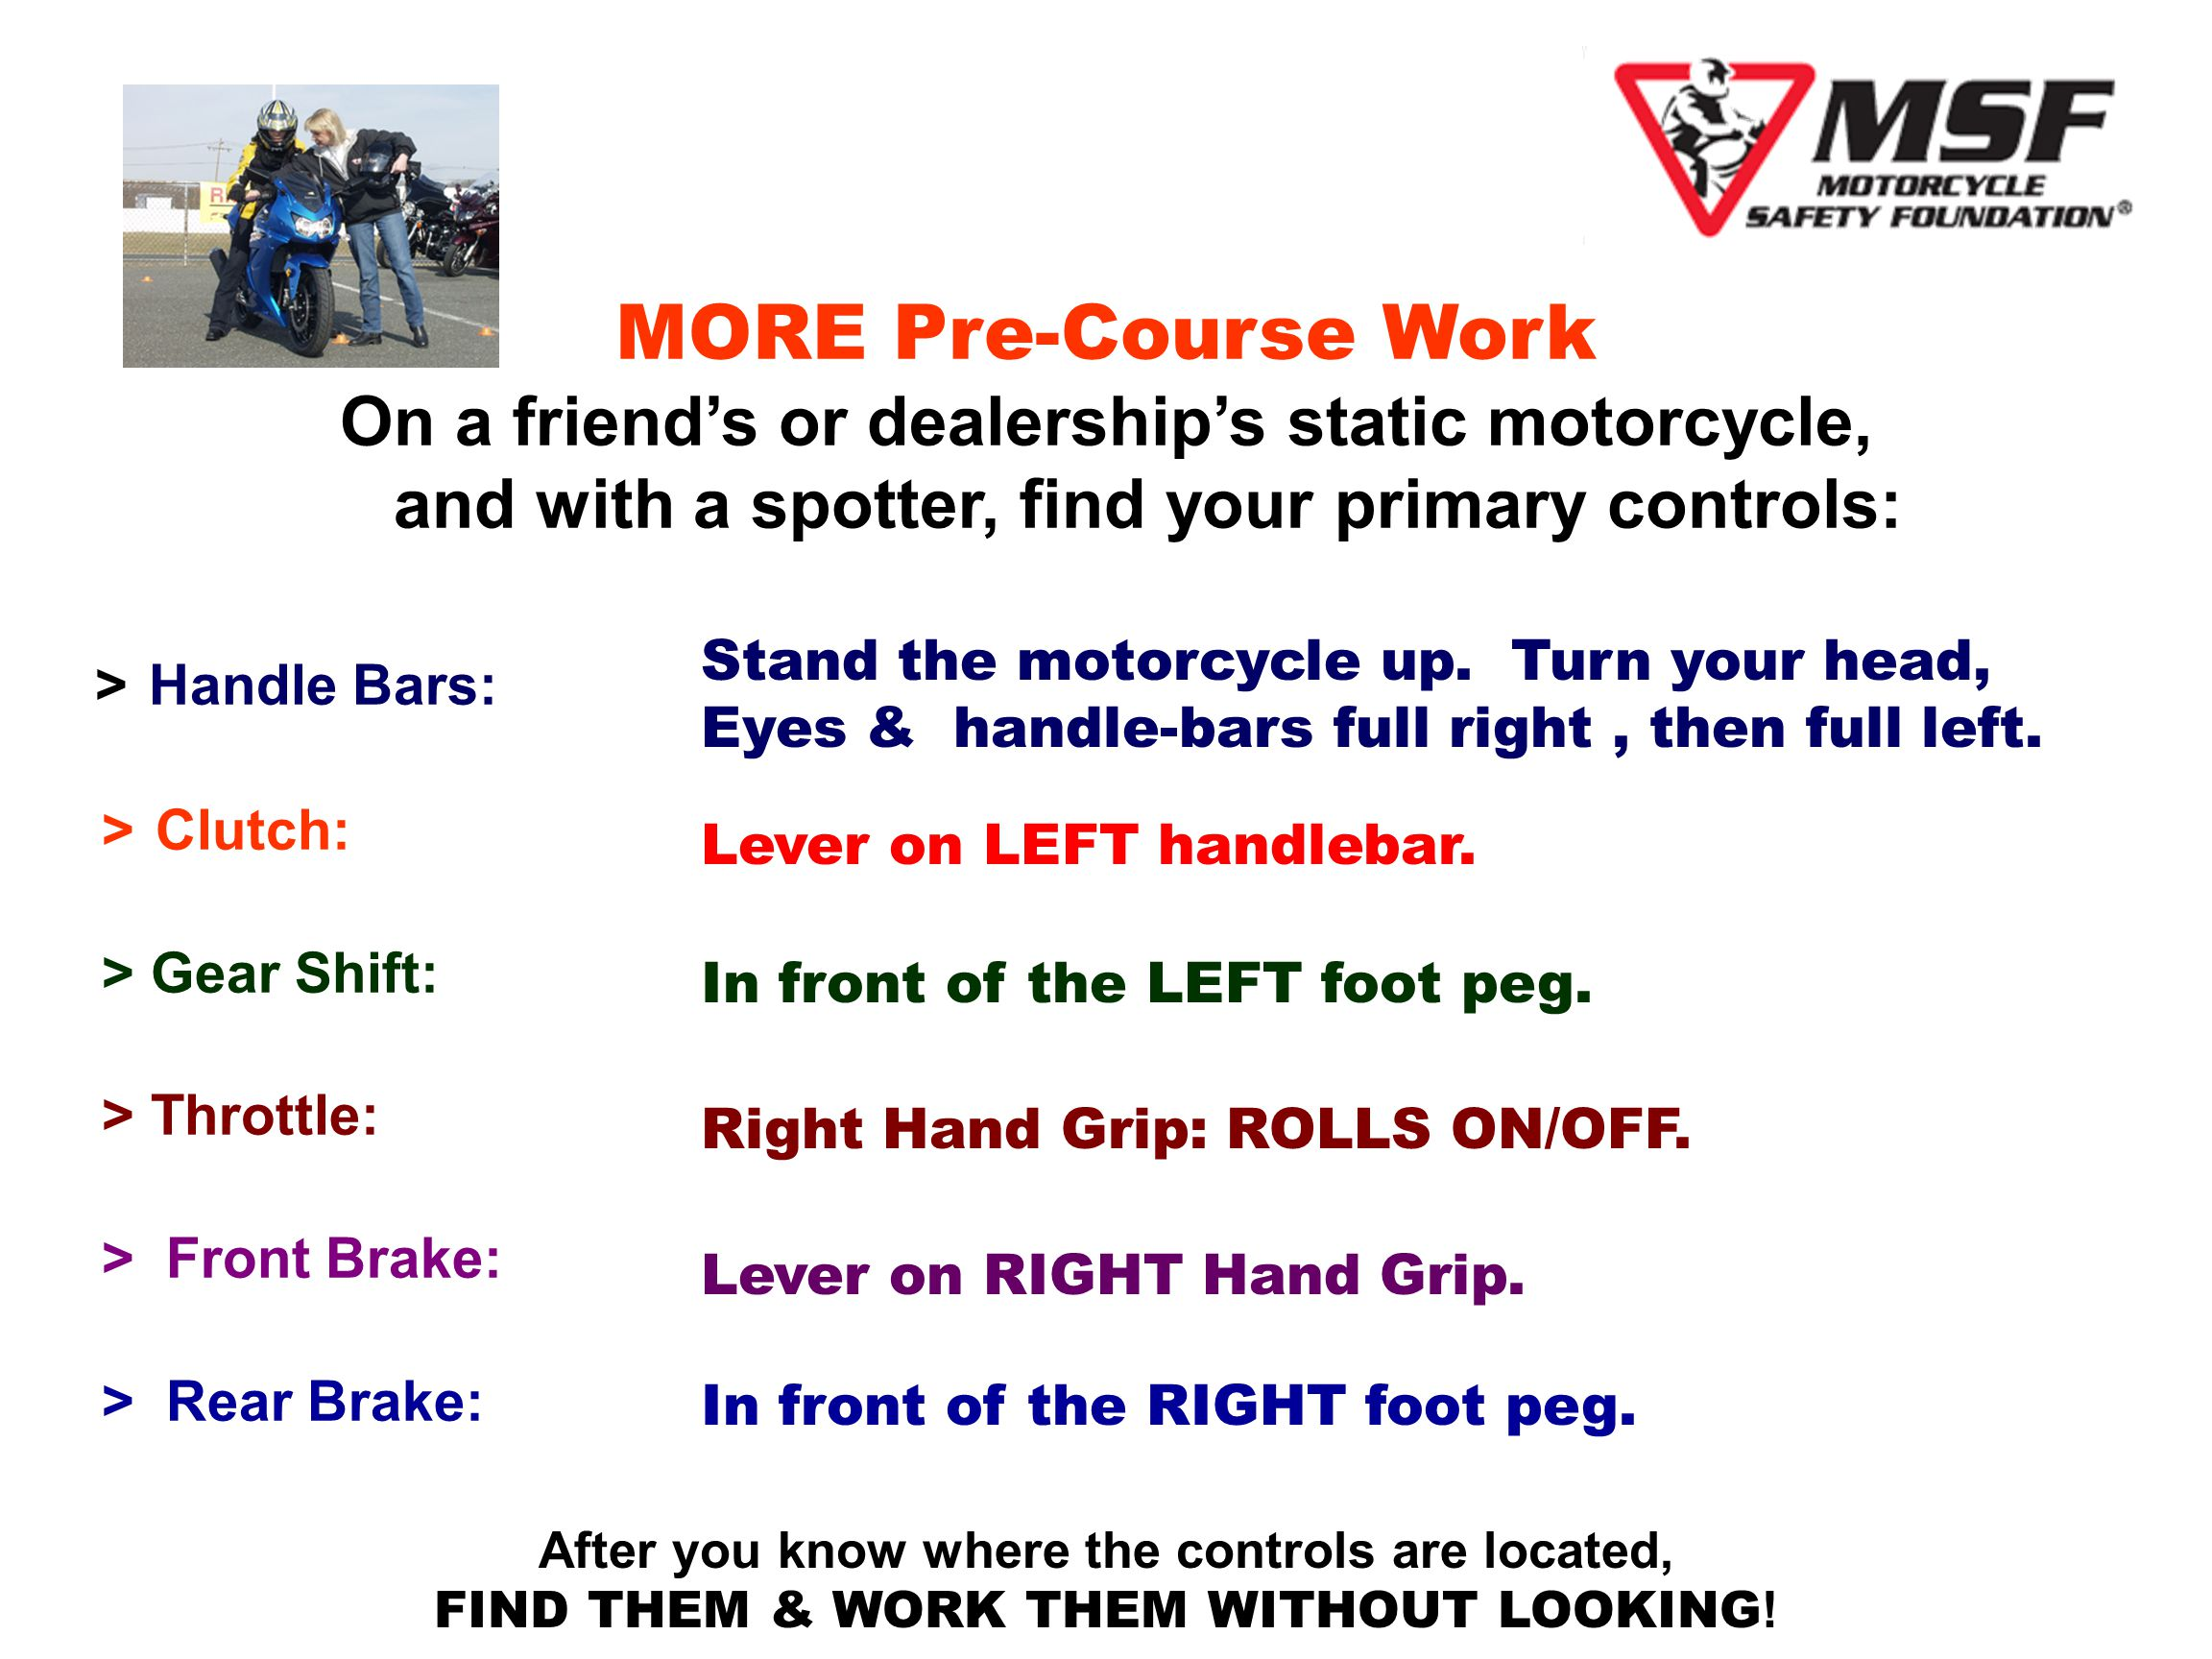 MORE Pre-Course Work On a friends or dealerships static motorcycle, and with a spotter, find your primary controls: > Handle Bars: > Clutch: > Gear Shift: > Throttle: > Front Brake: > Rear Brake: Stand the motorcycle up.